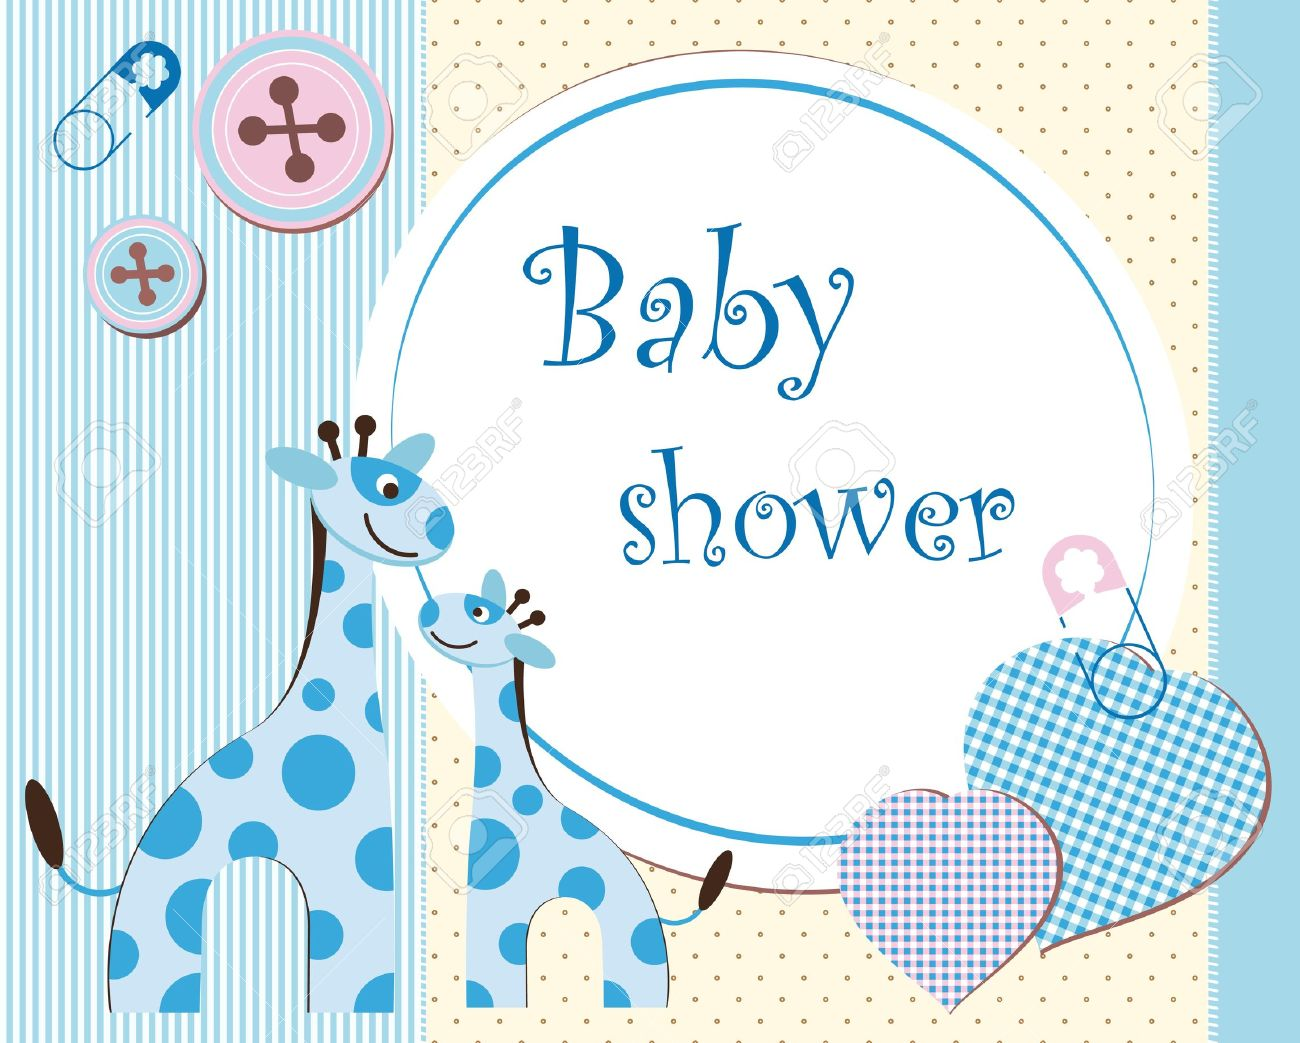 Baby Shower Boy: Baby Shower   Boy Illustration